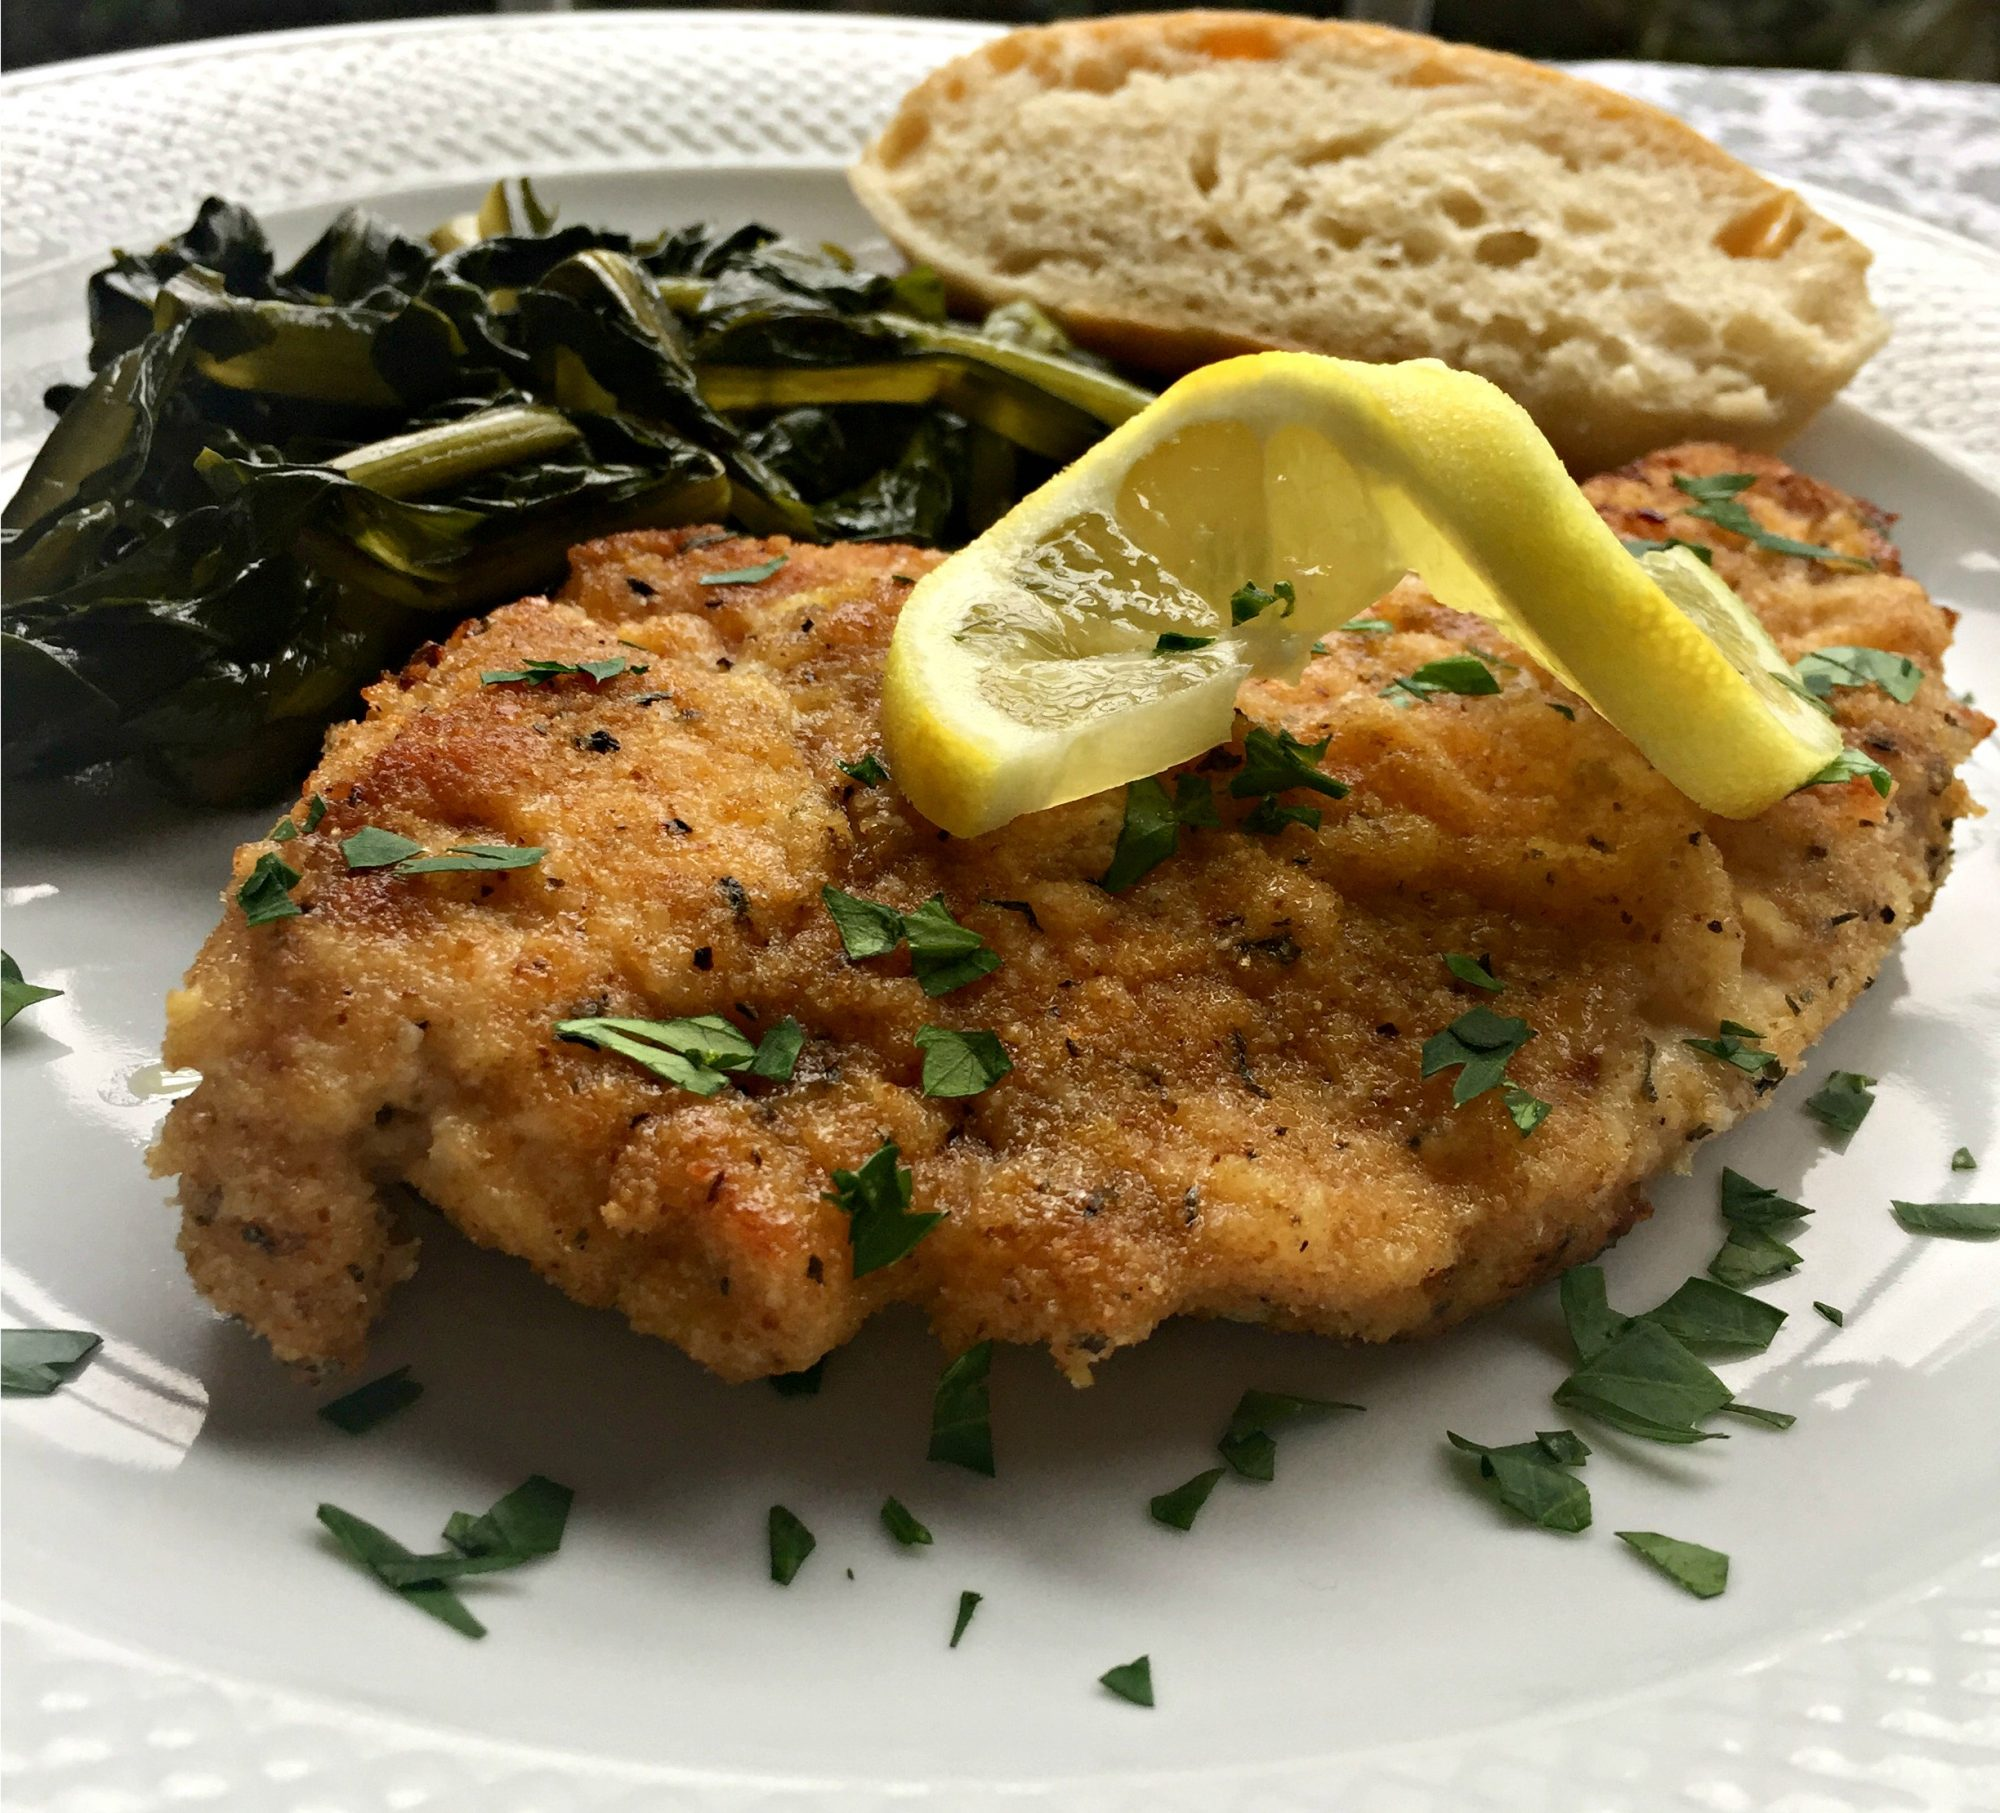 a breaded chicken breast on a dinner plate garnished with a twisted lemon slice and chopped parsley